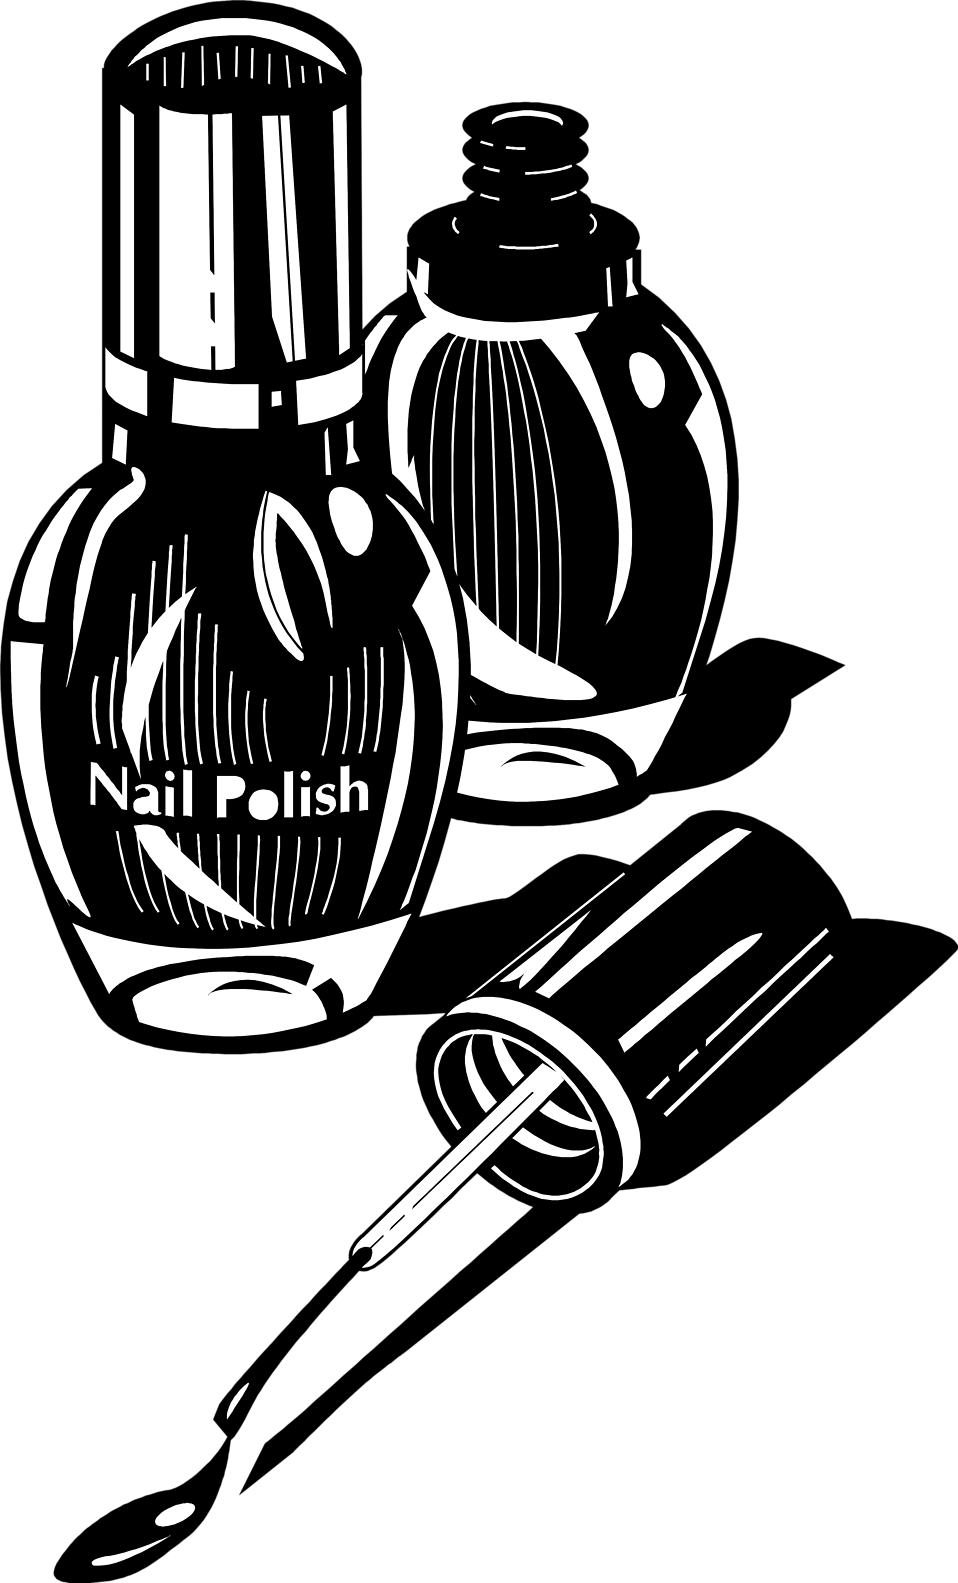 Illustration of nail polish bottles : Free Stock Photo